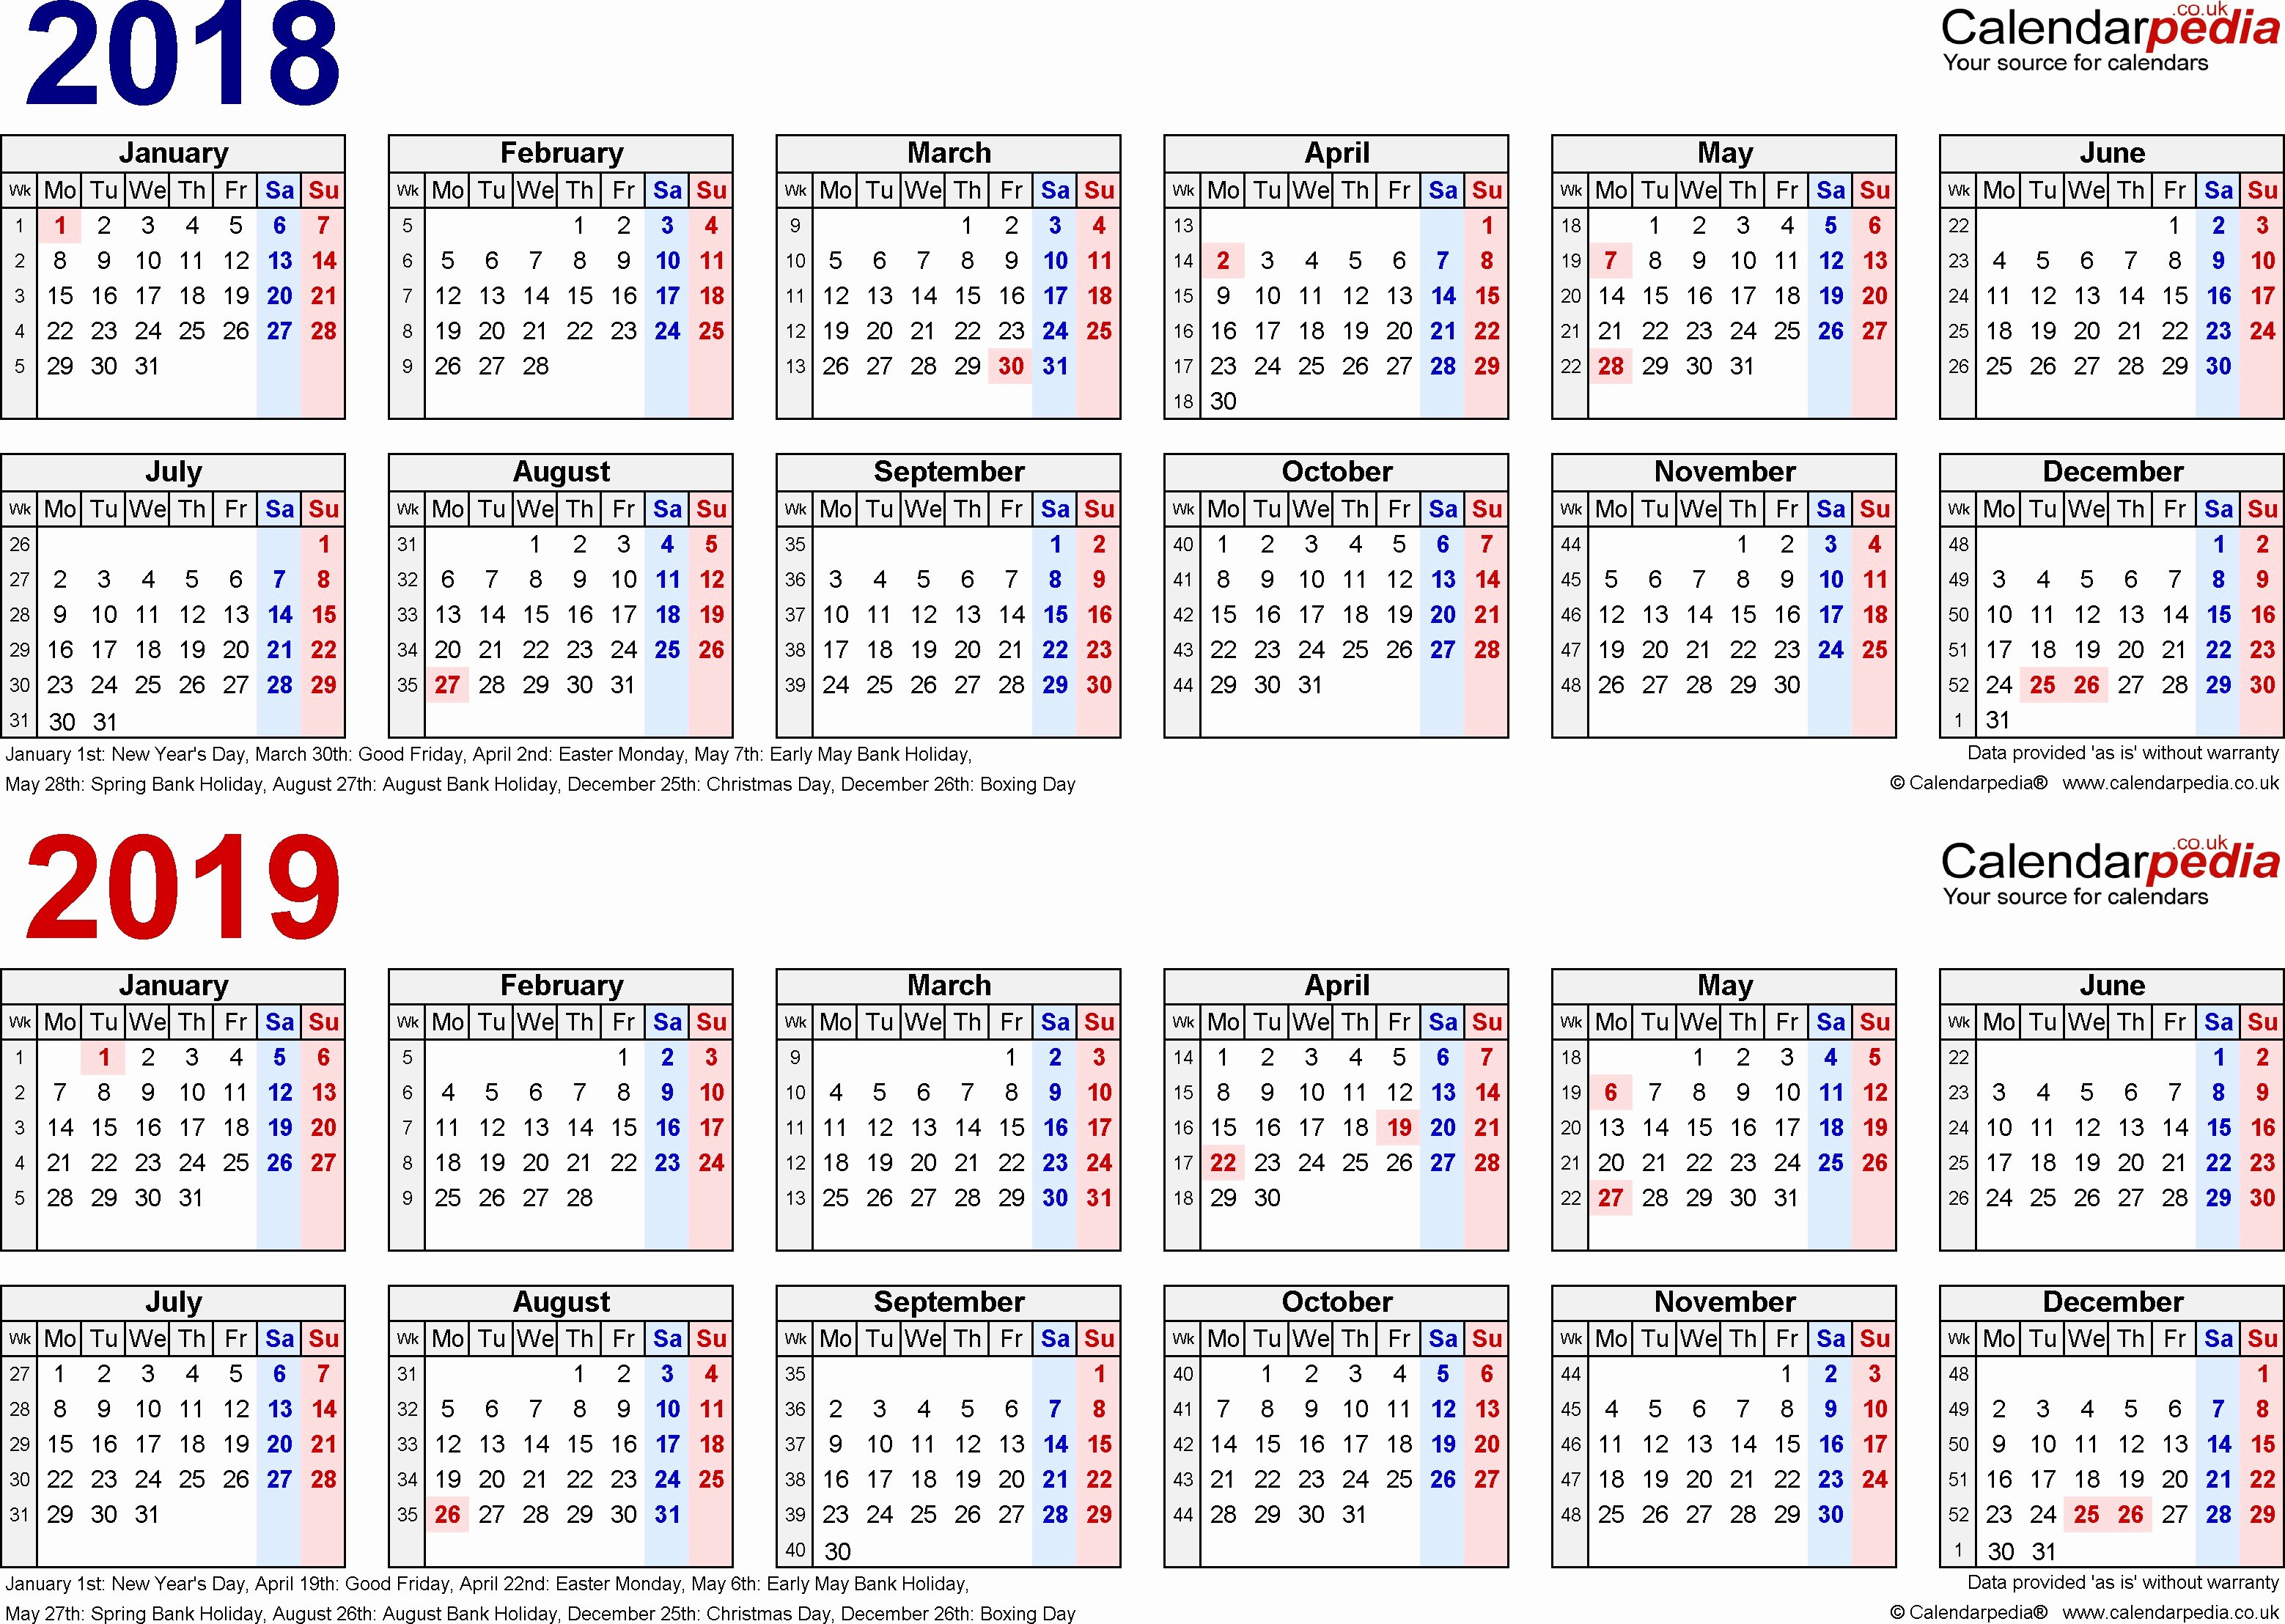 2019 Biweekly Payroll Calendar Template Lovely Pay Period Calendar Bi Weekly 2018